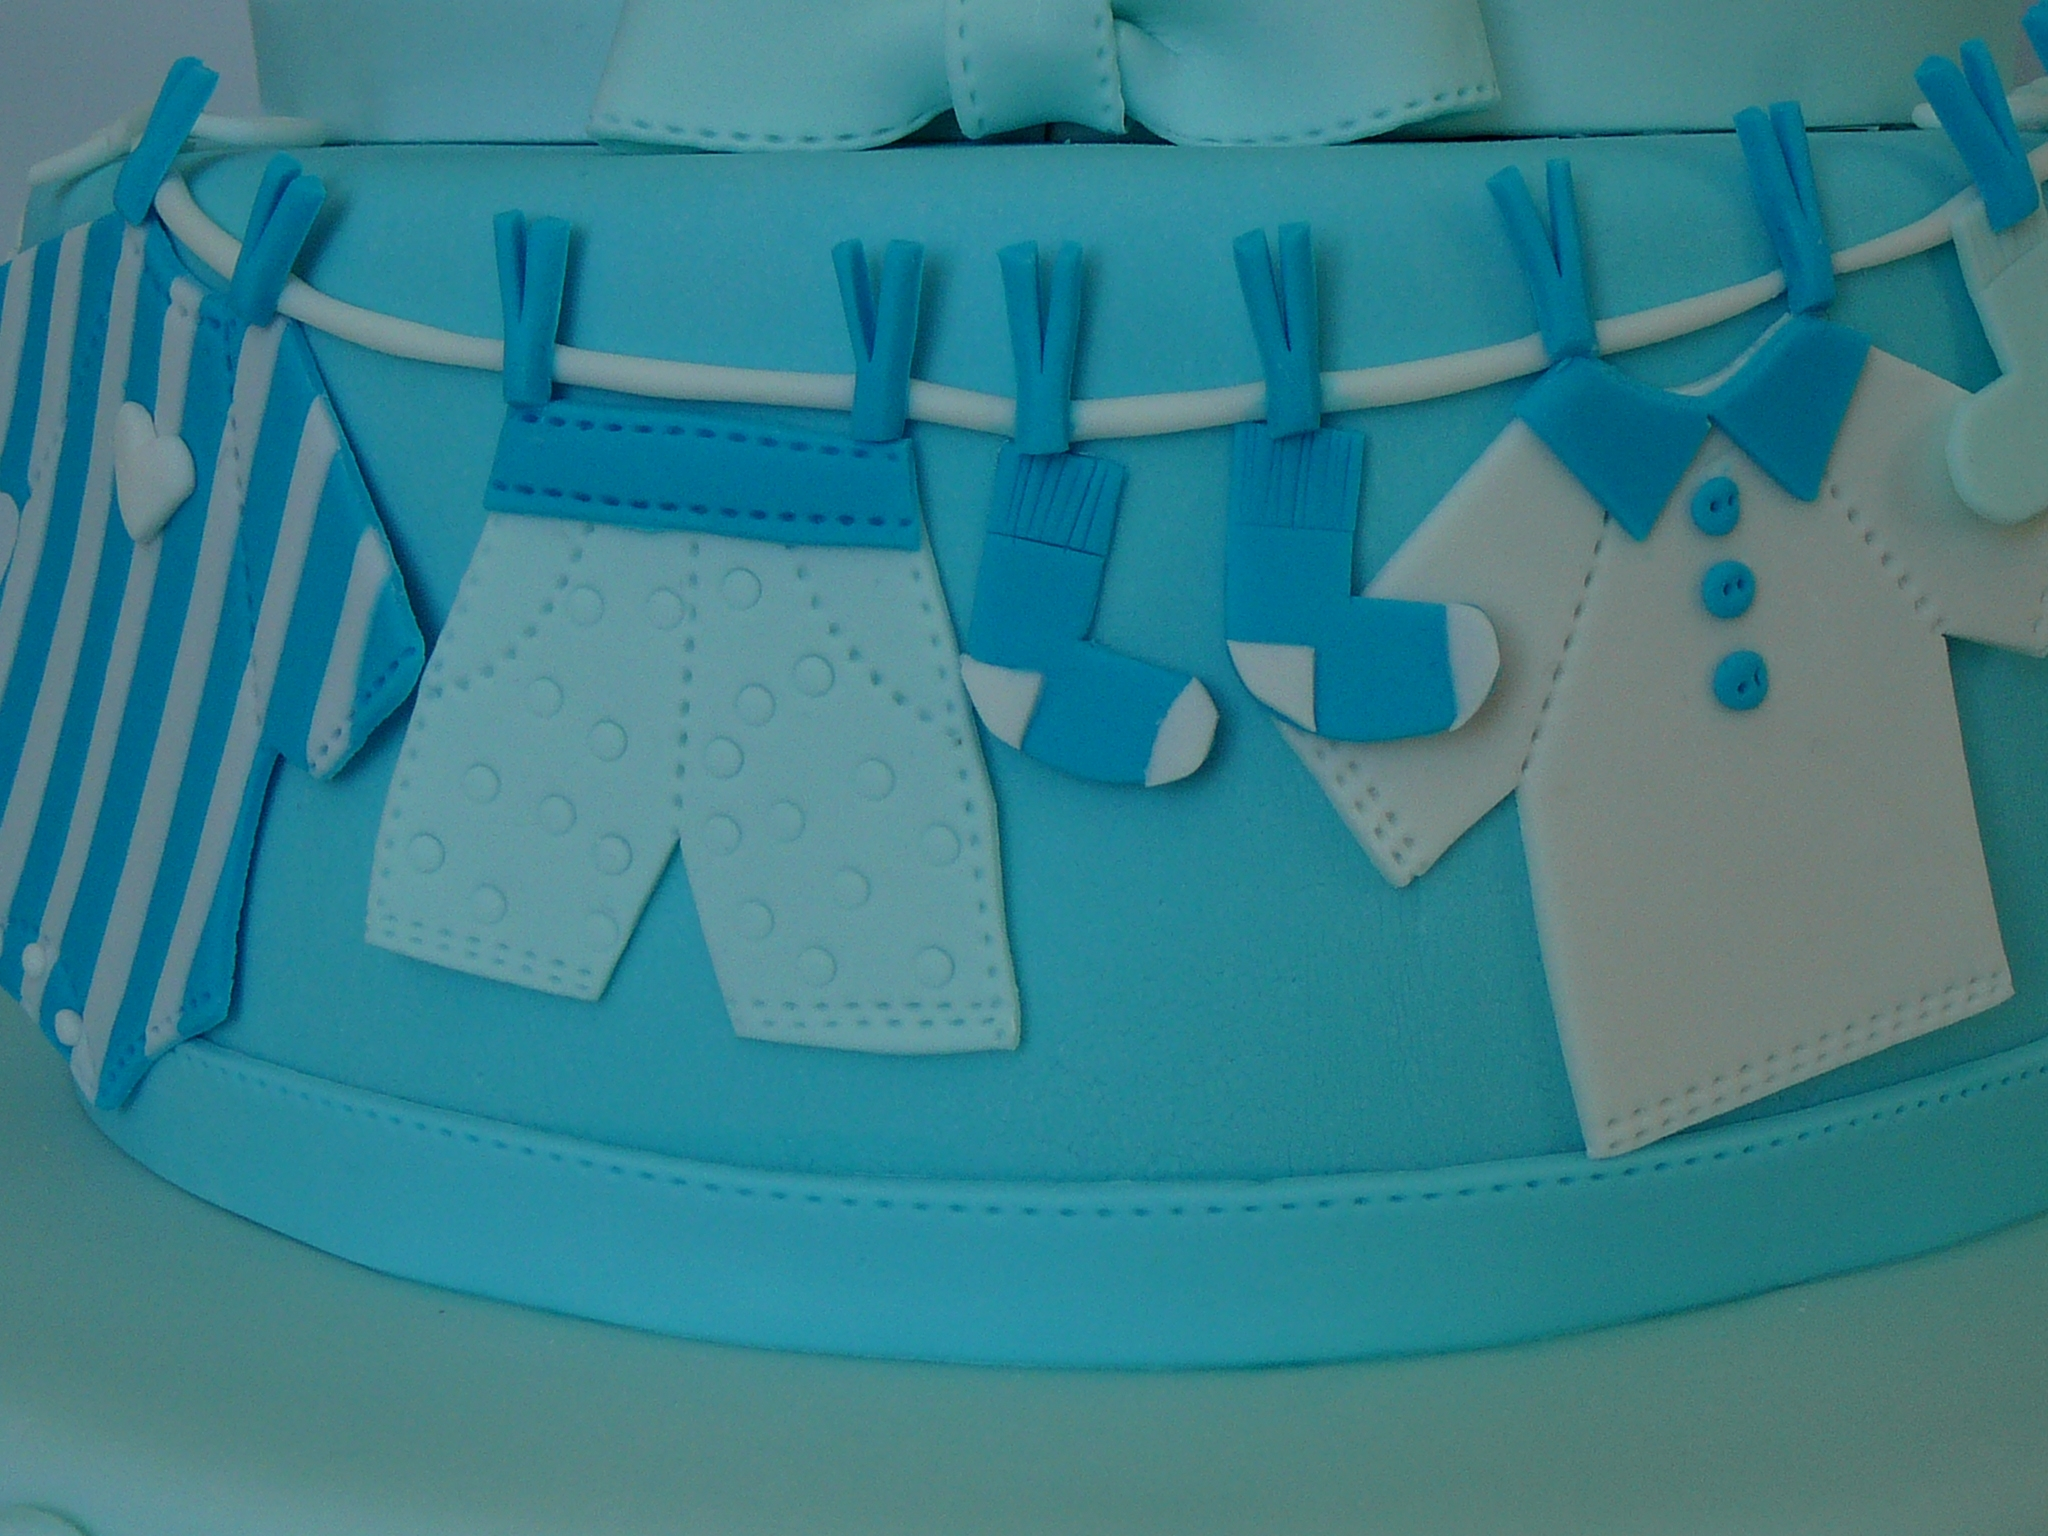 Converse Baby Shoes And Buttons Shower CakeCentral